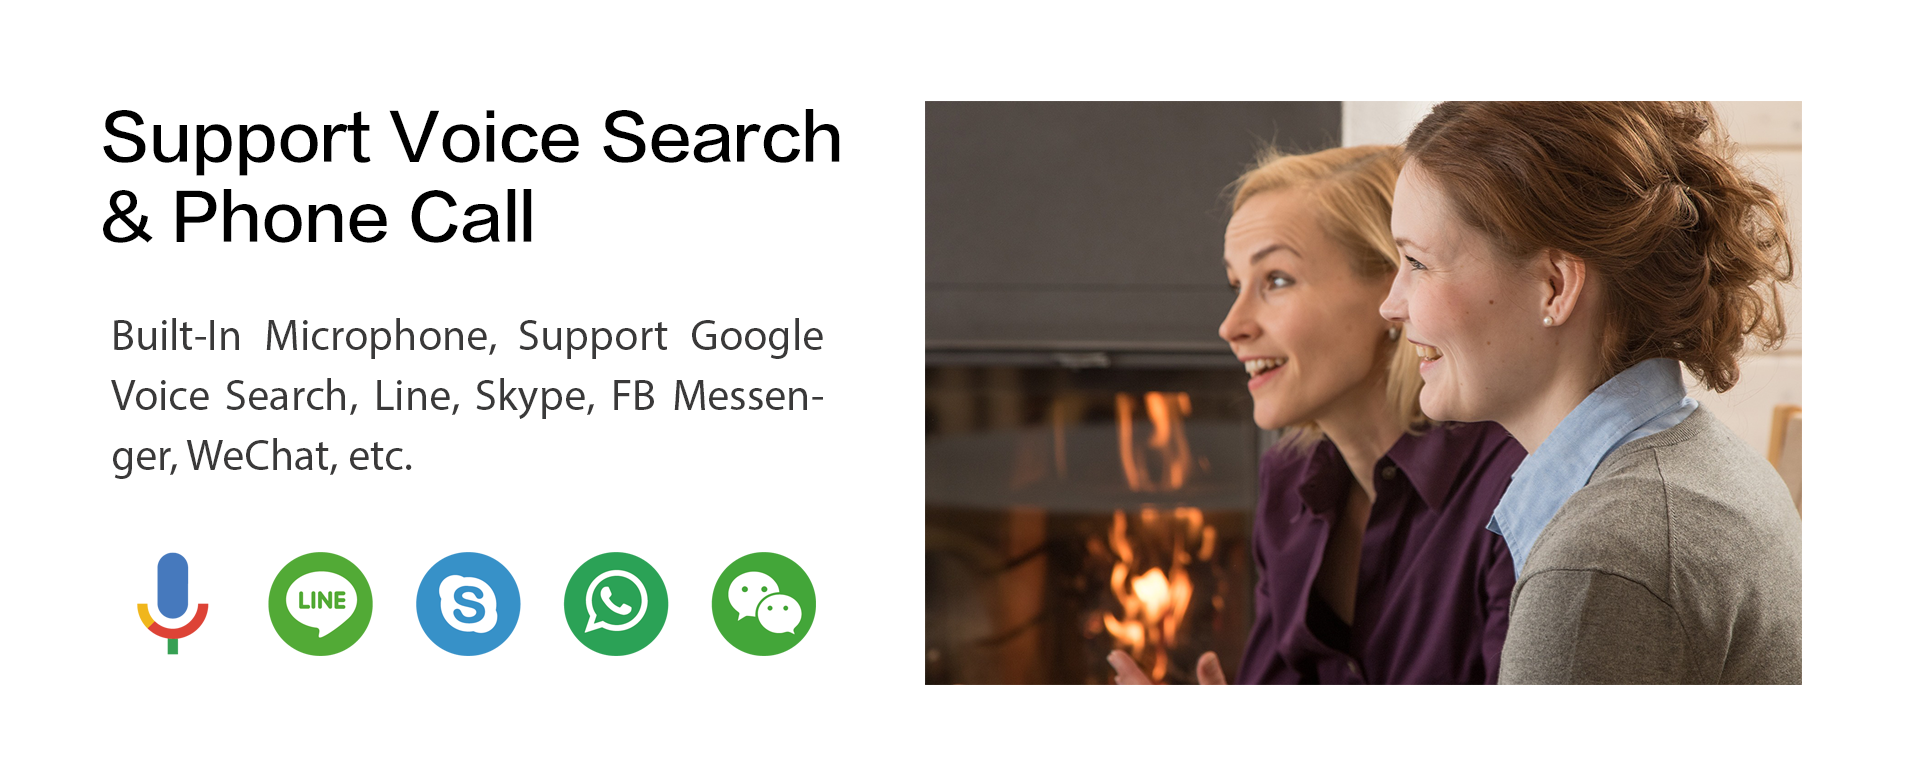 Support Voice Search & Phone Call